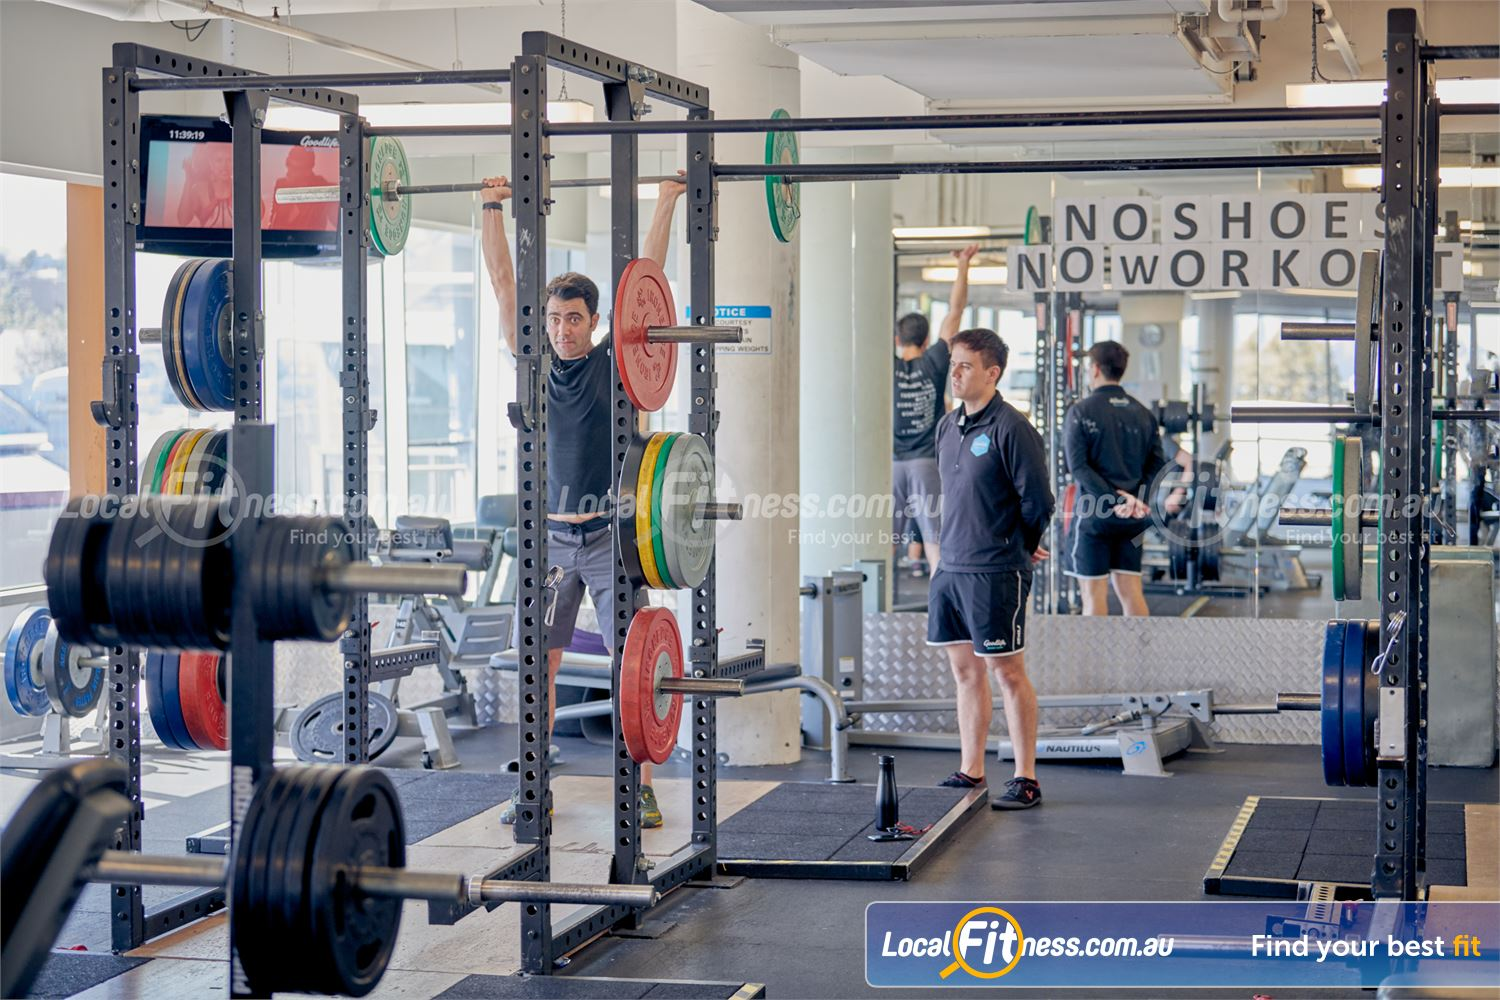 Goodlife Health Clubs Near Glen Iris Our gym includes Olympic lifting platforms perfect for squats and deadlifts.